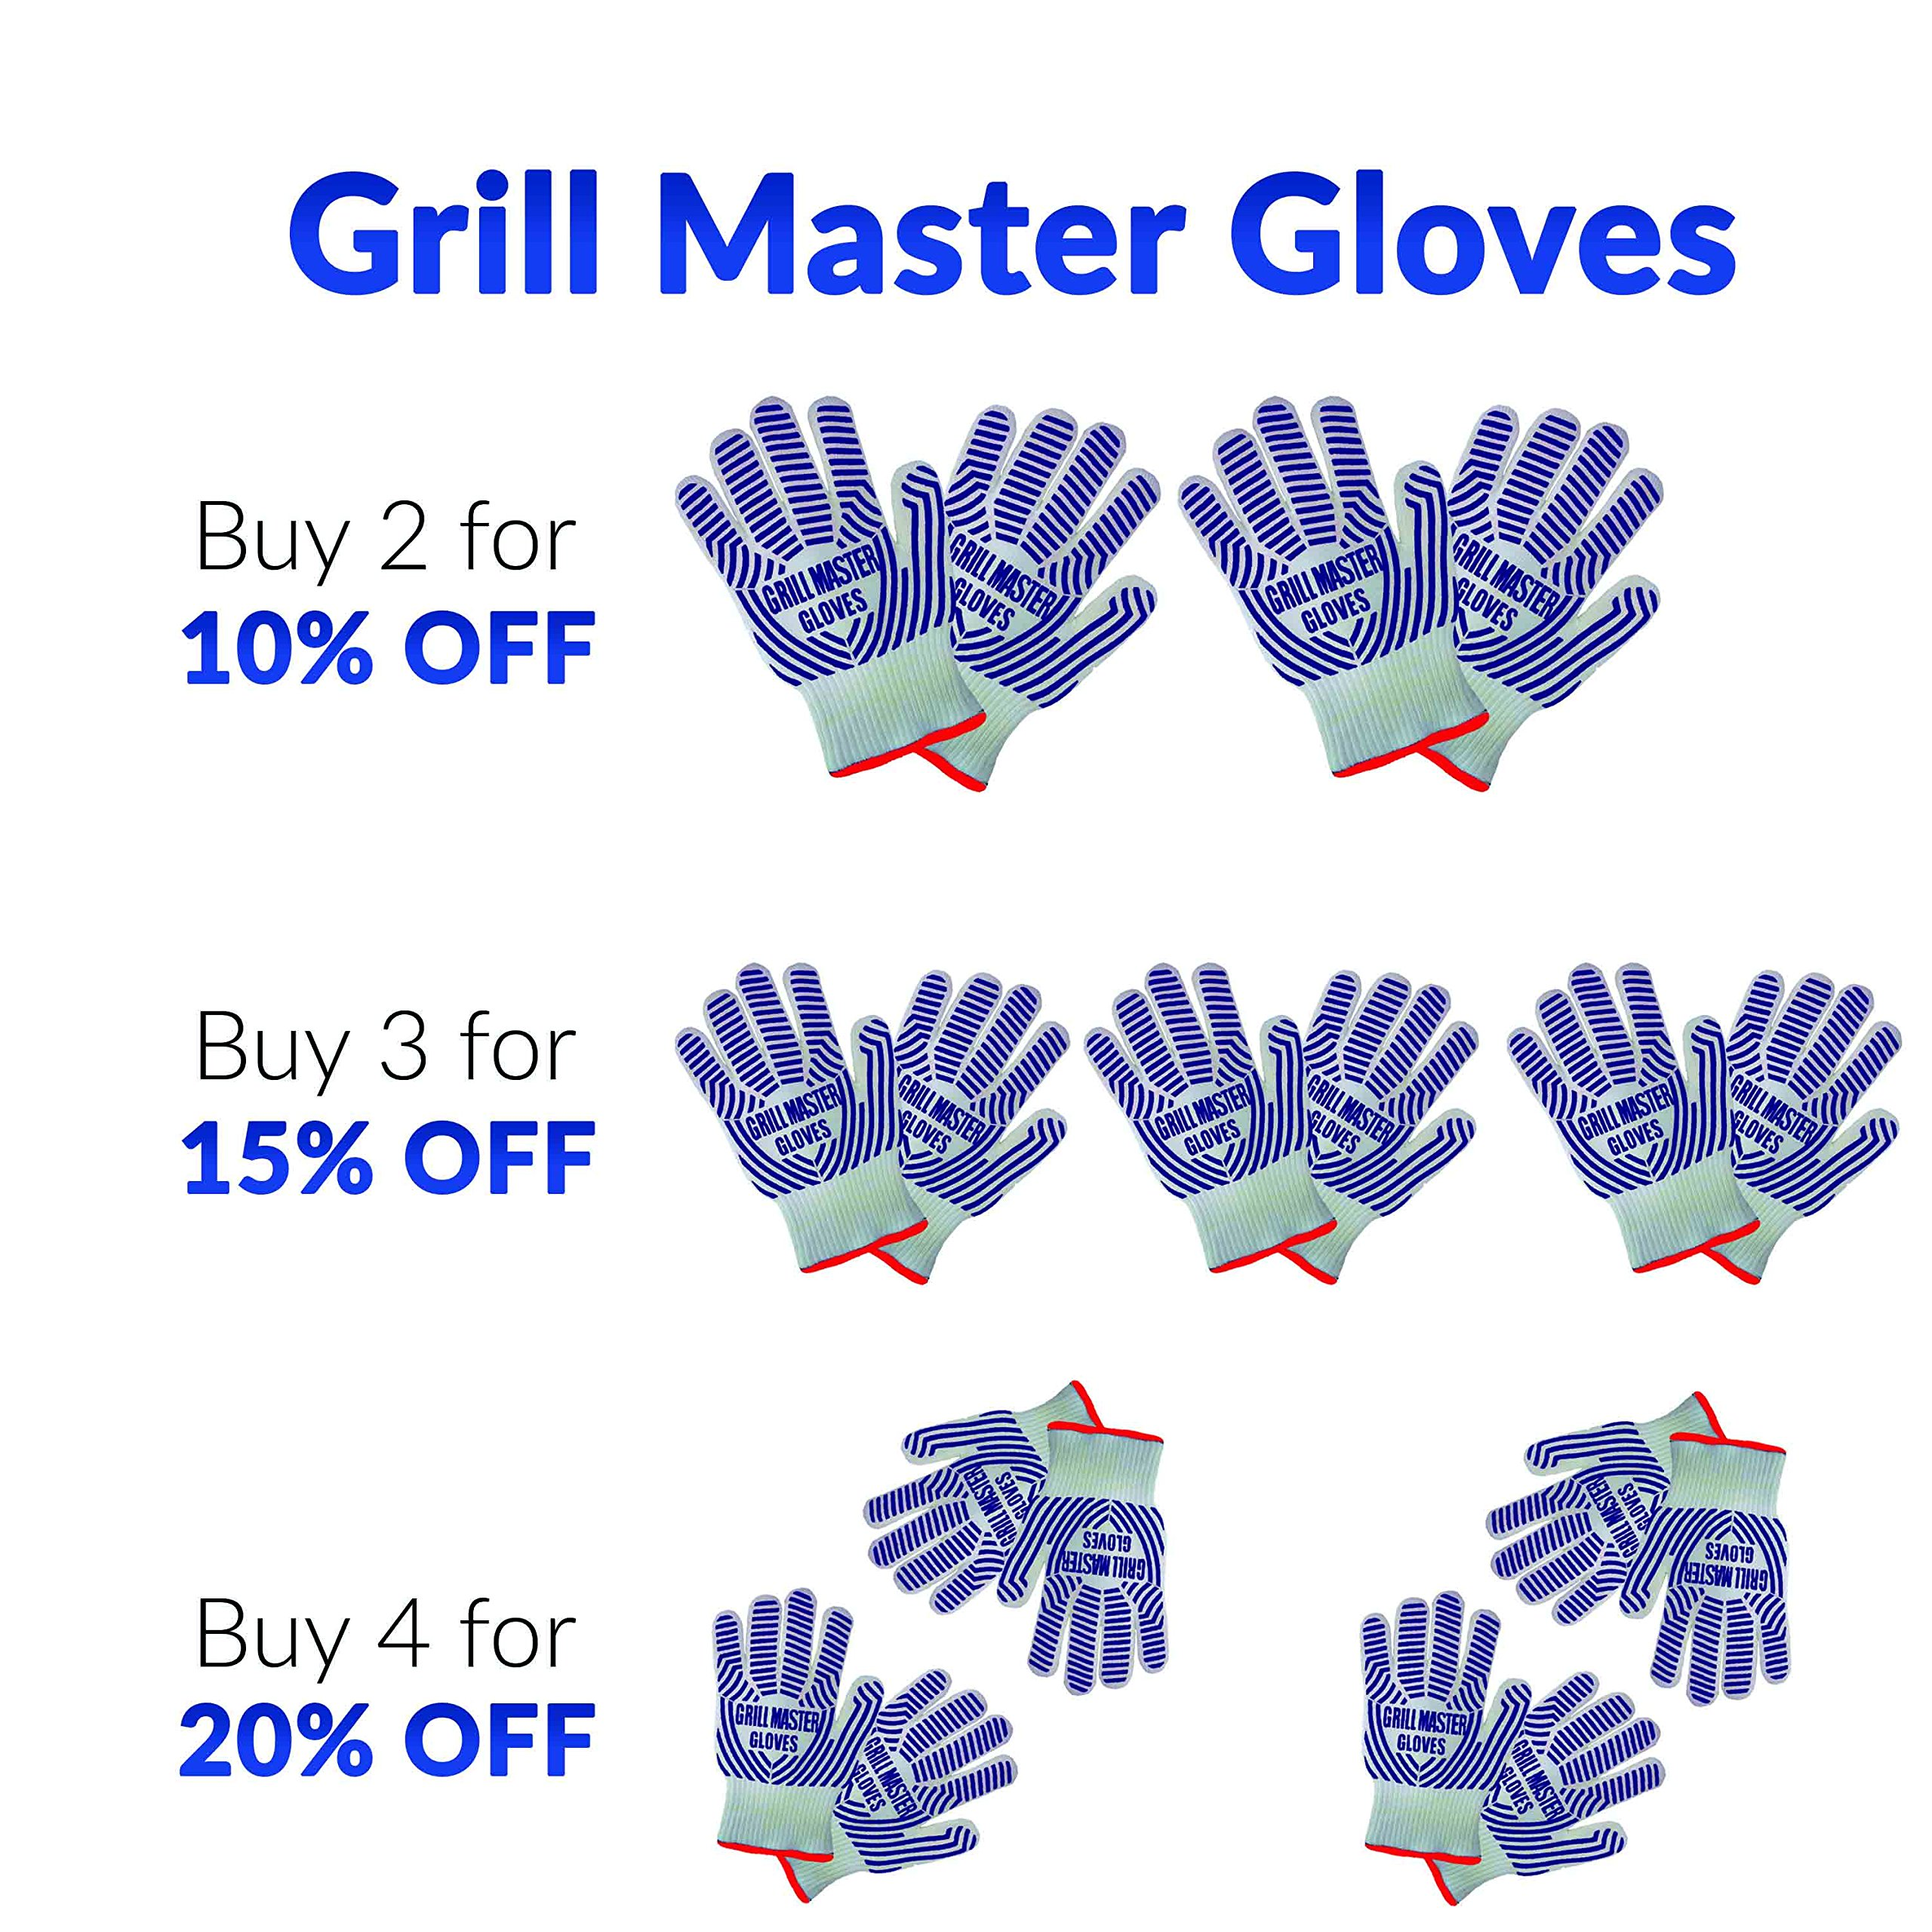 Grill Gloves Heat Resistant Extreme BBQ Gloves Oven Gloves Rated to 932f - Ideal Grilling Gloves by Grill Master (Black) by Grill Master Gloves (Image #6)